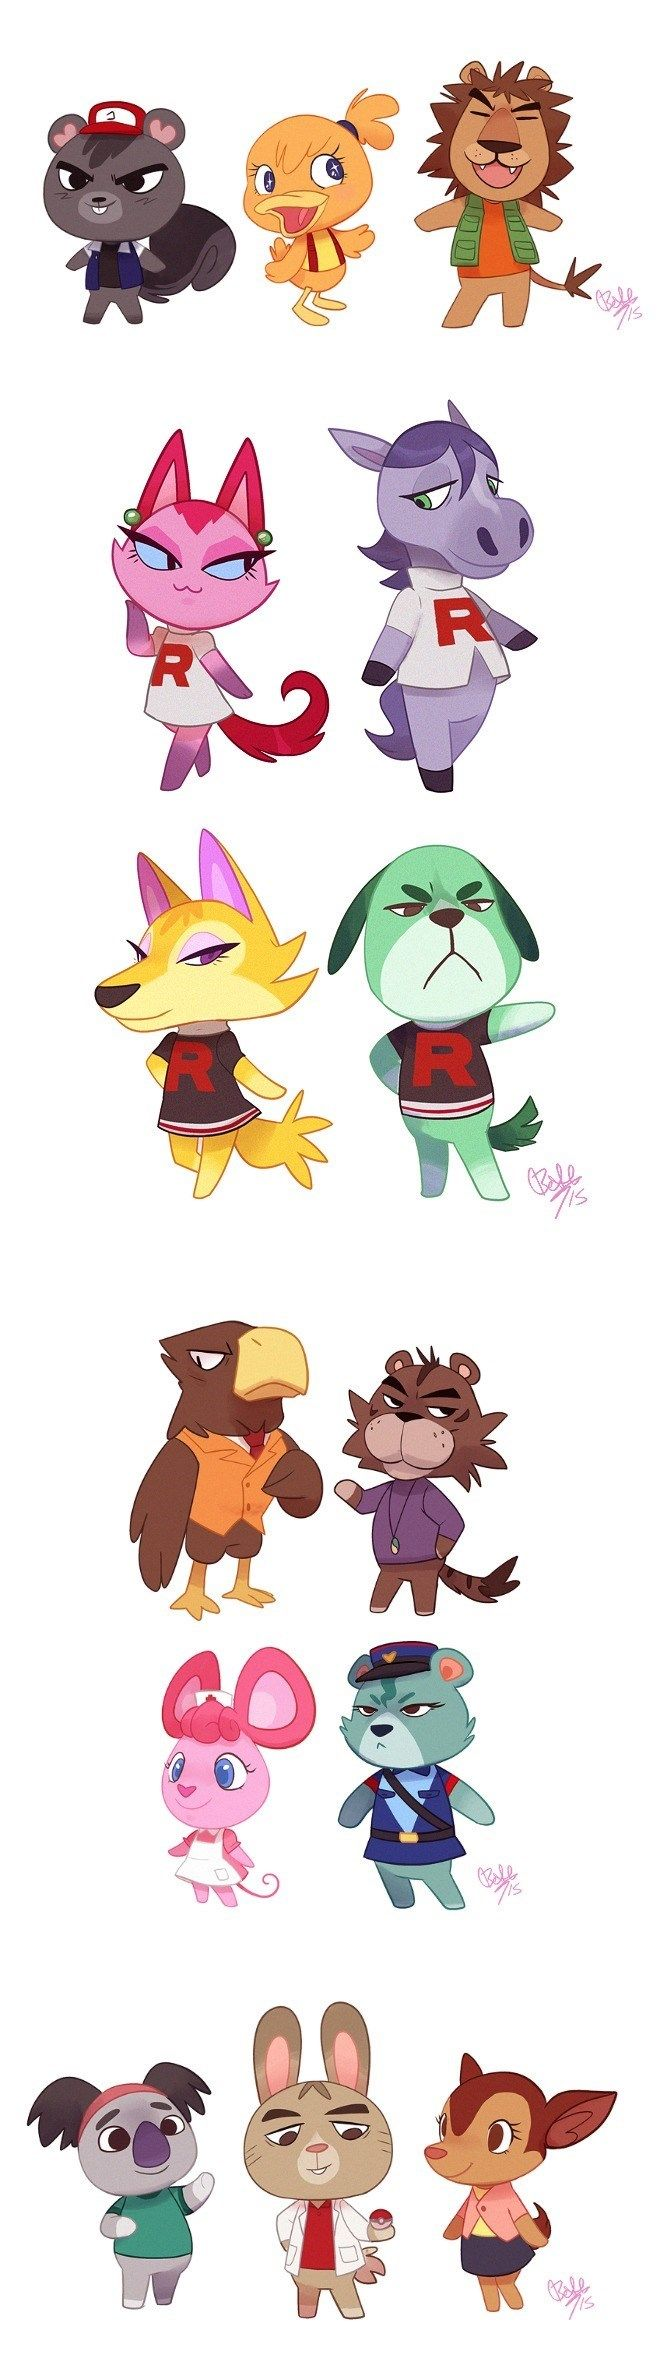 Pokémon meets Animal Crossing. This is so cute.